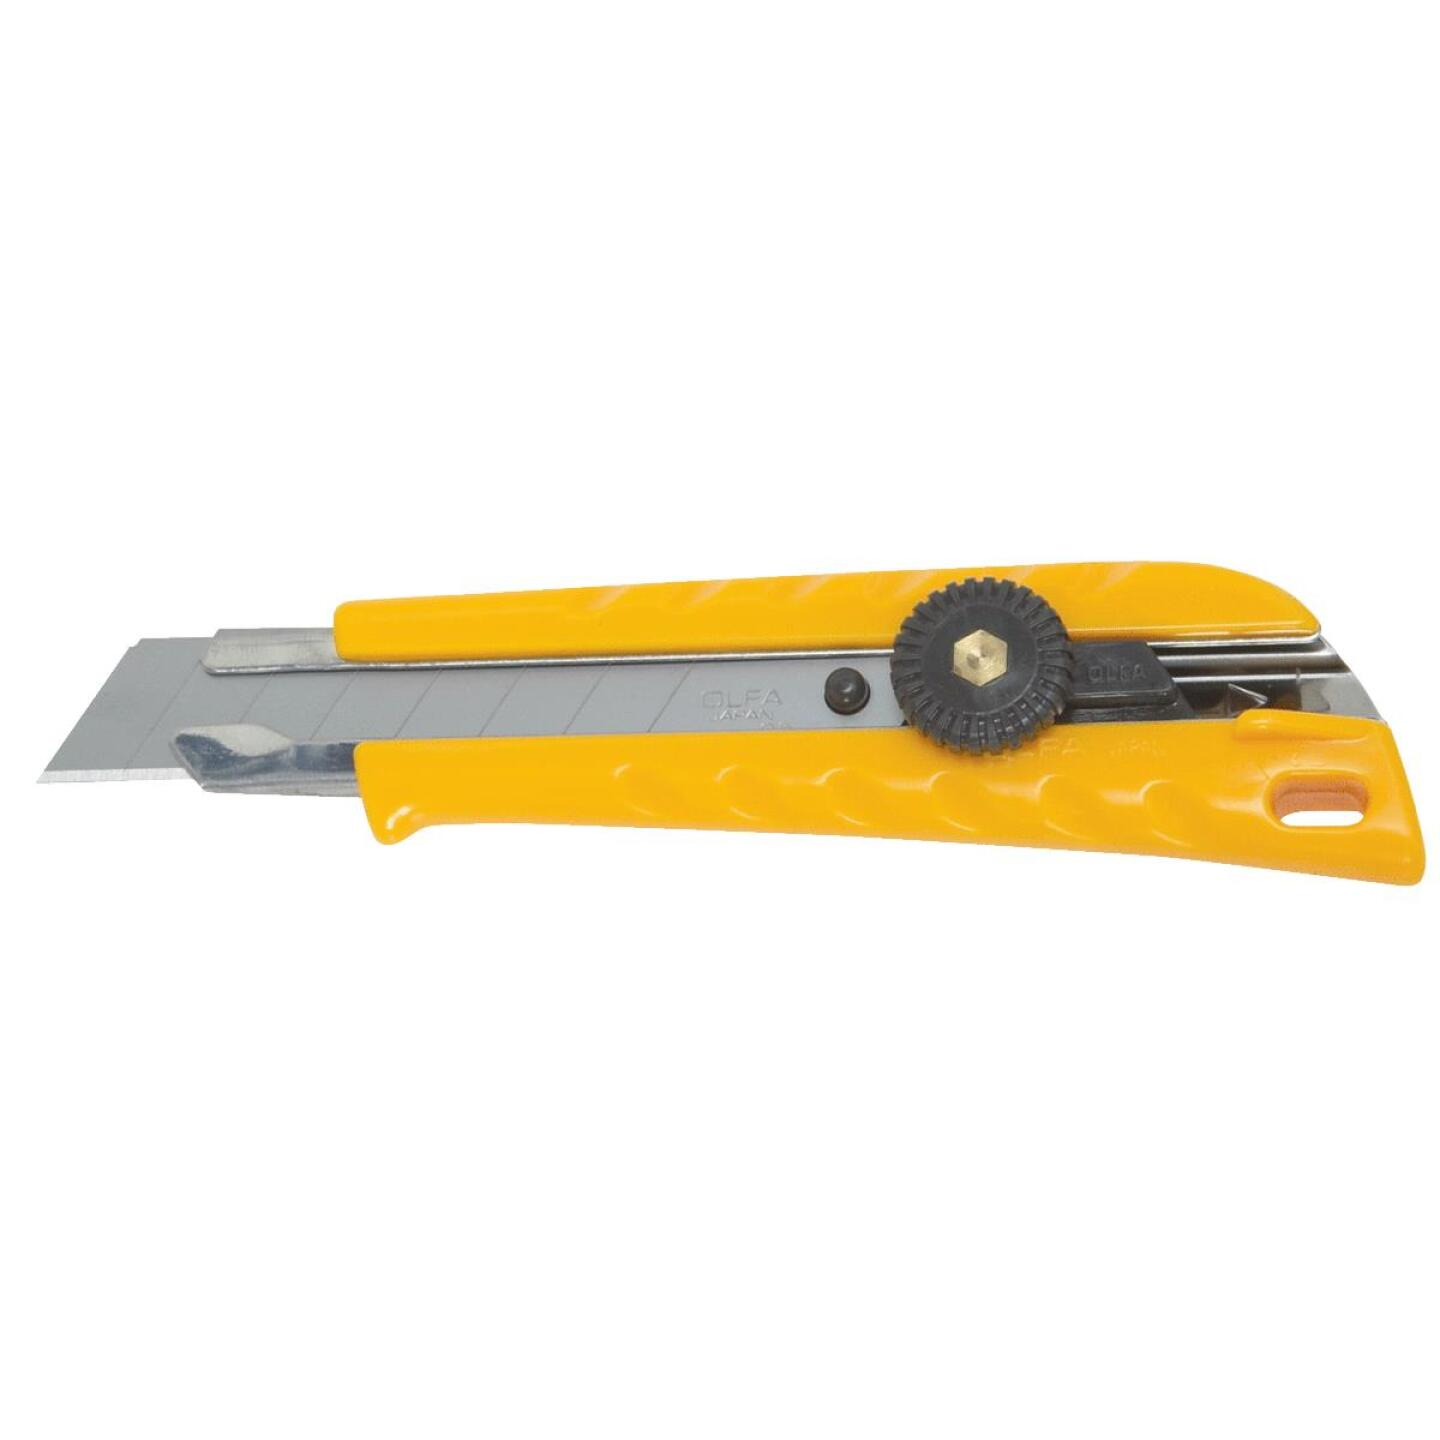 Olfa 18mm 8-Point Ratchet-Lock L-1 Snap-Off Knife Image 1